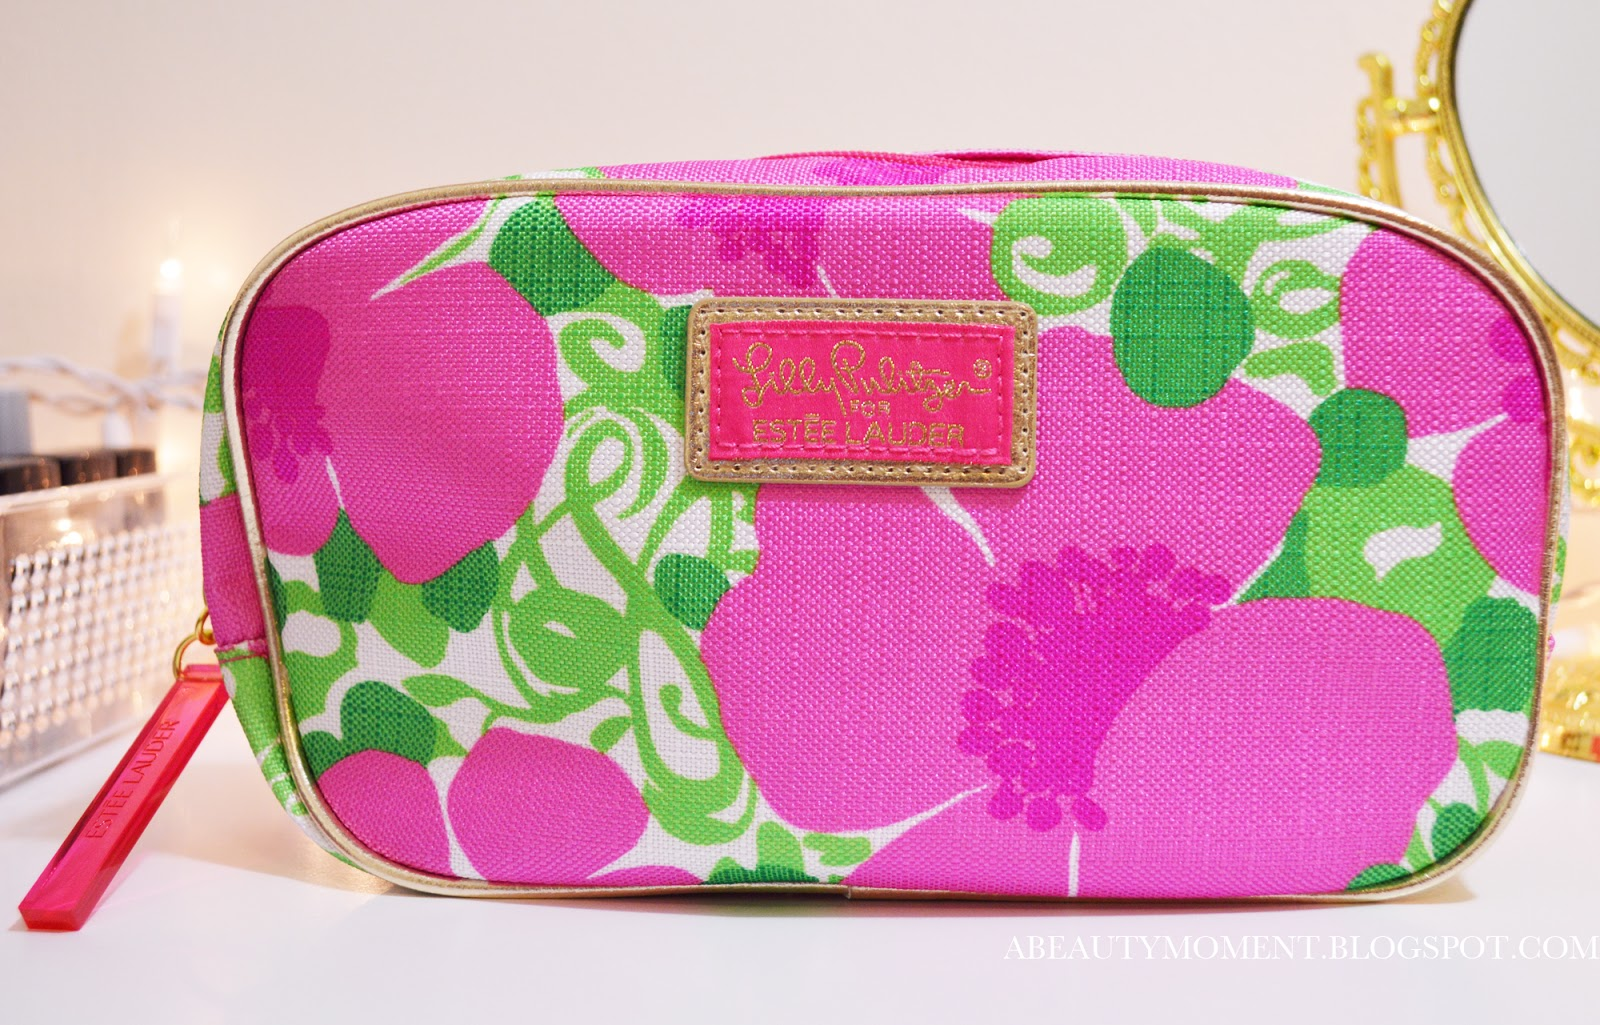 Lilly pulitzer makeup bag